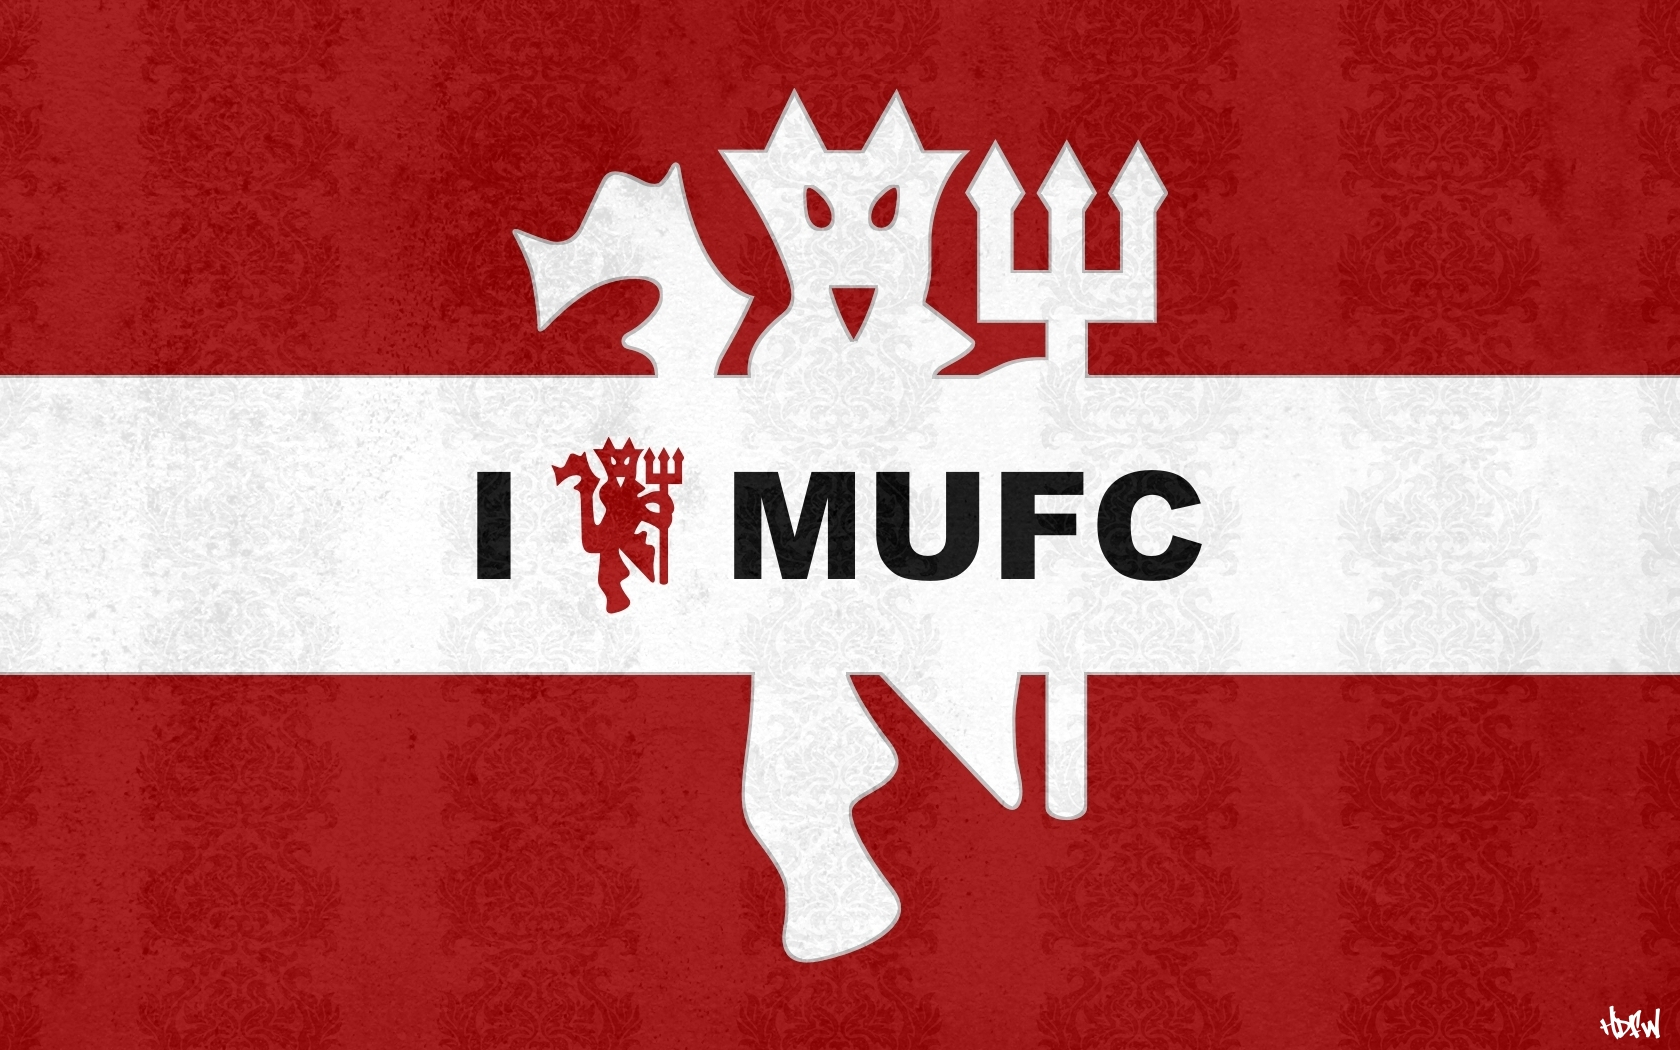 Hd wallpaper manchester united - Hd Wallpaper Manchester United 71